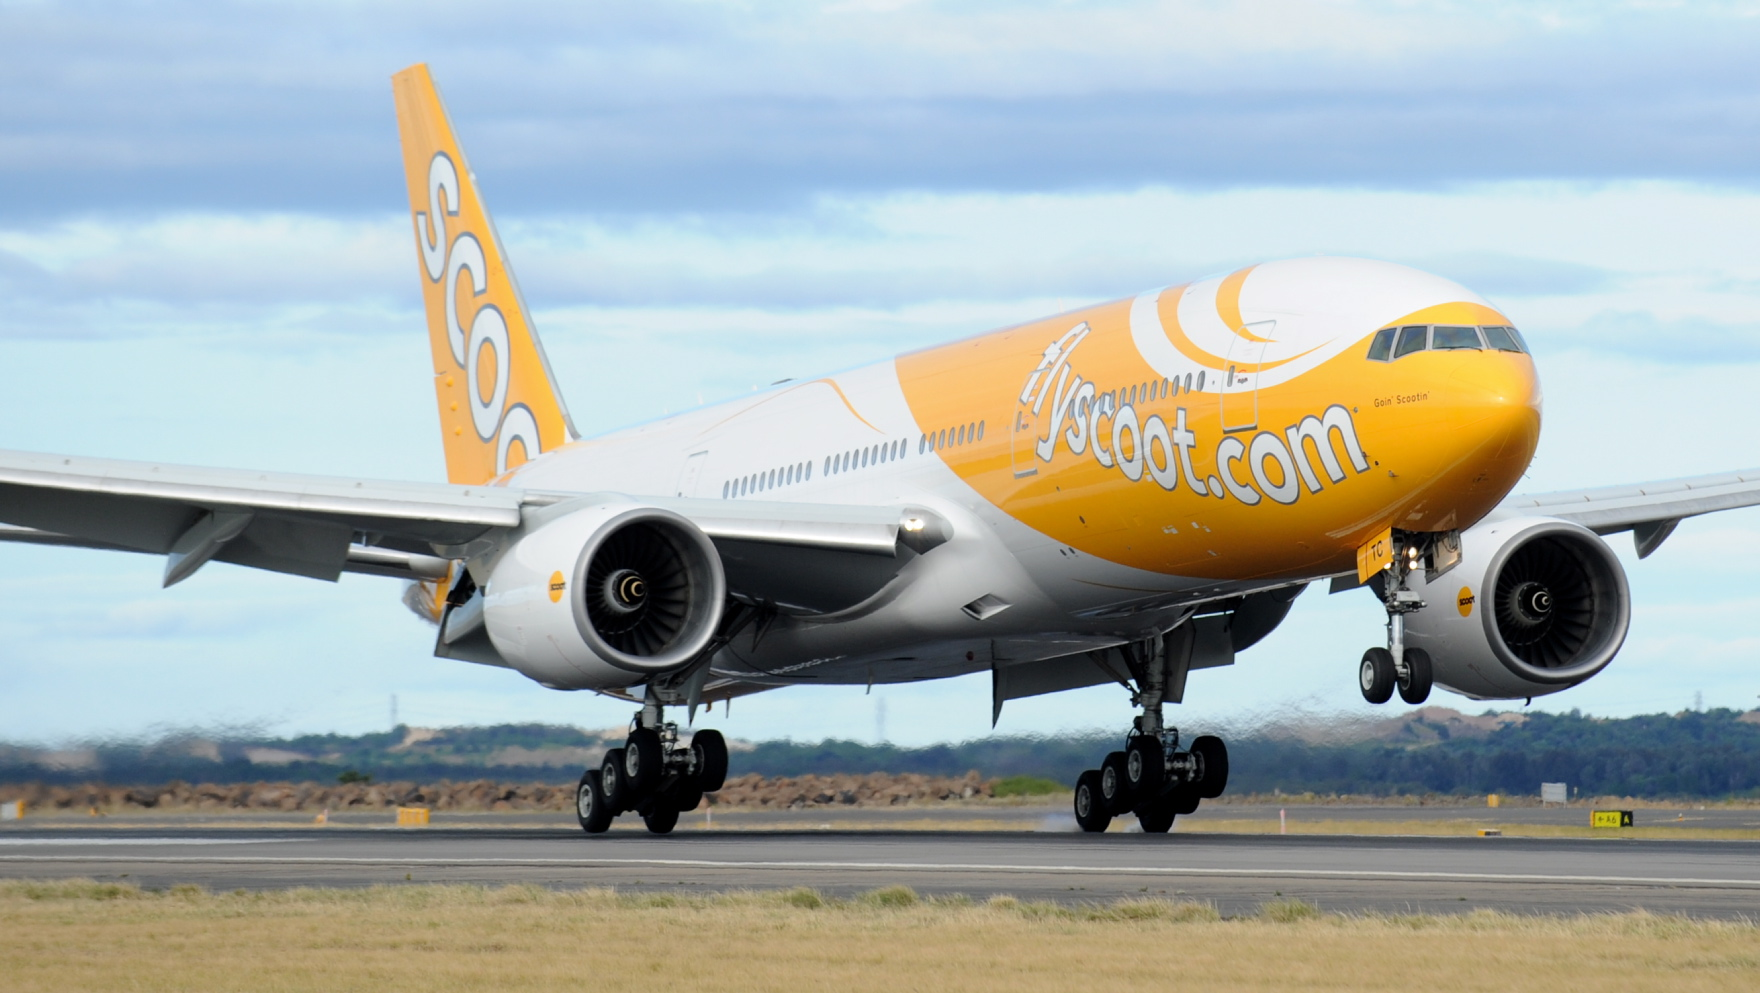 Nanjing is Scoot's fourth Chinese destination.